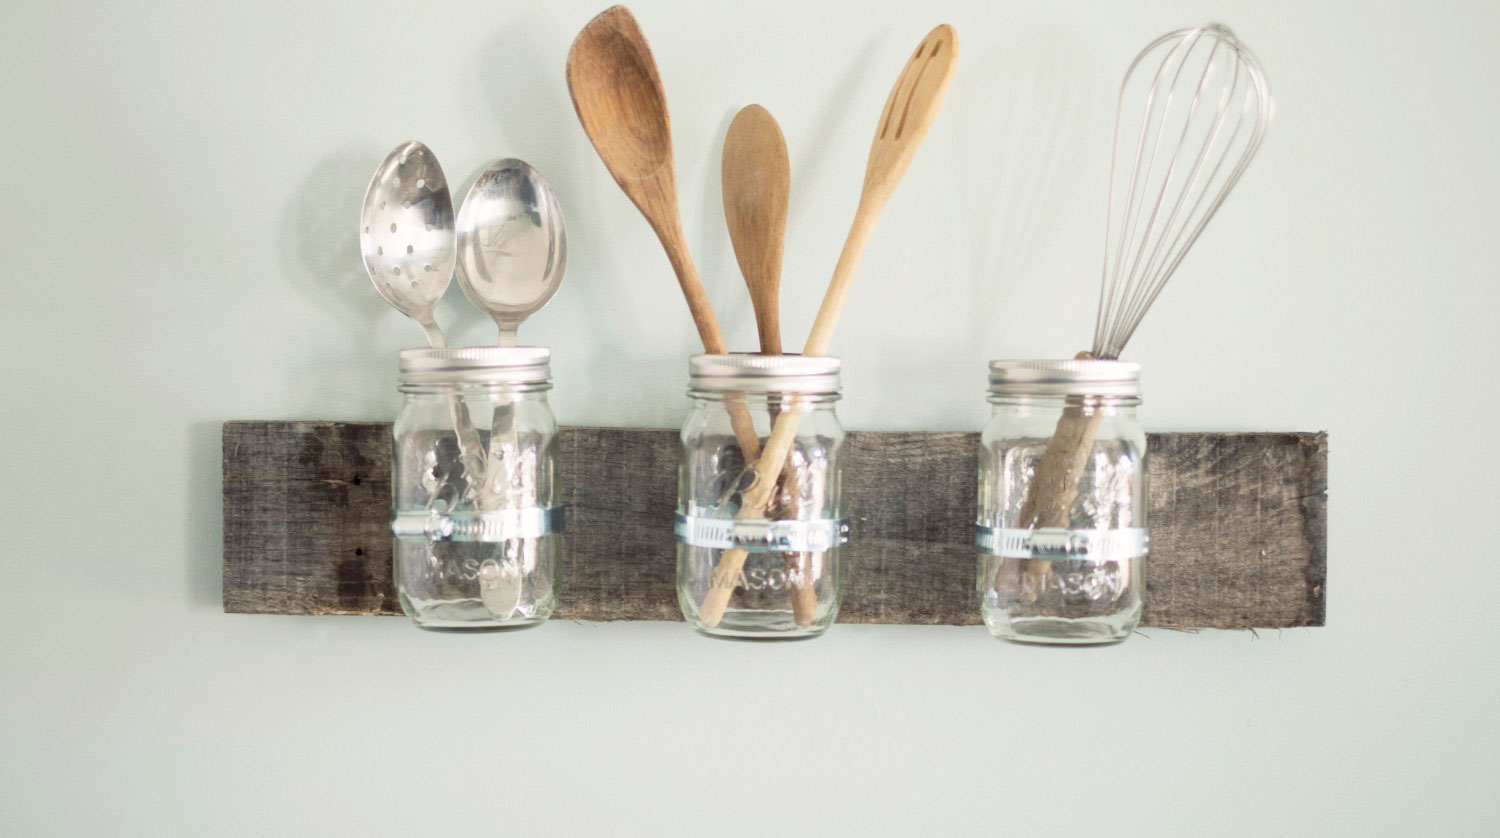 mason jar kitchen decorating ideas - mason jar ideas